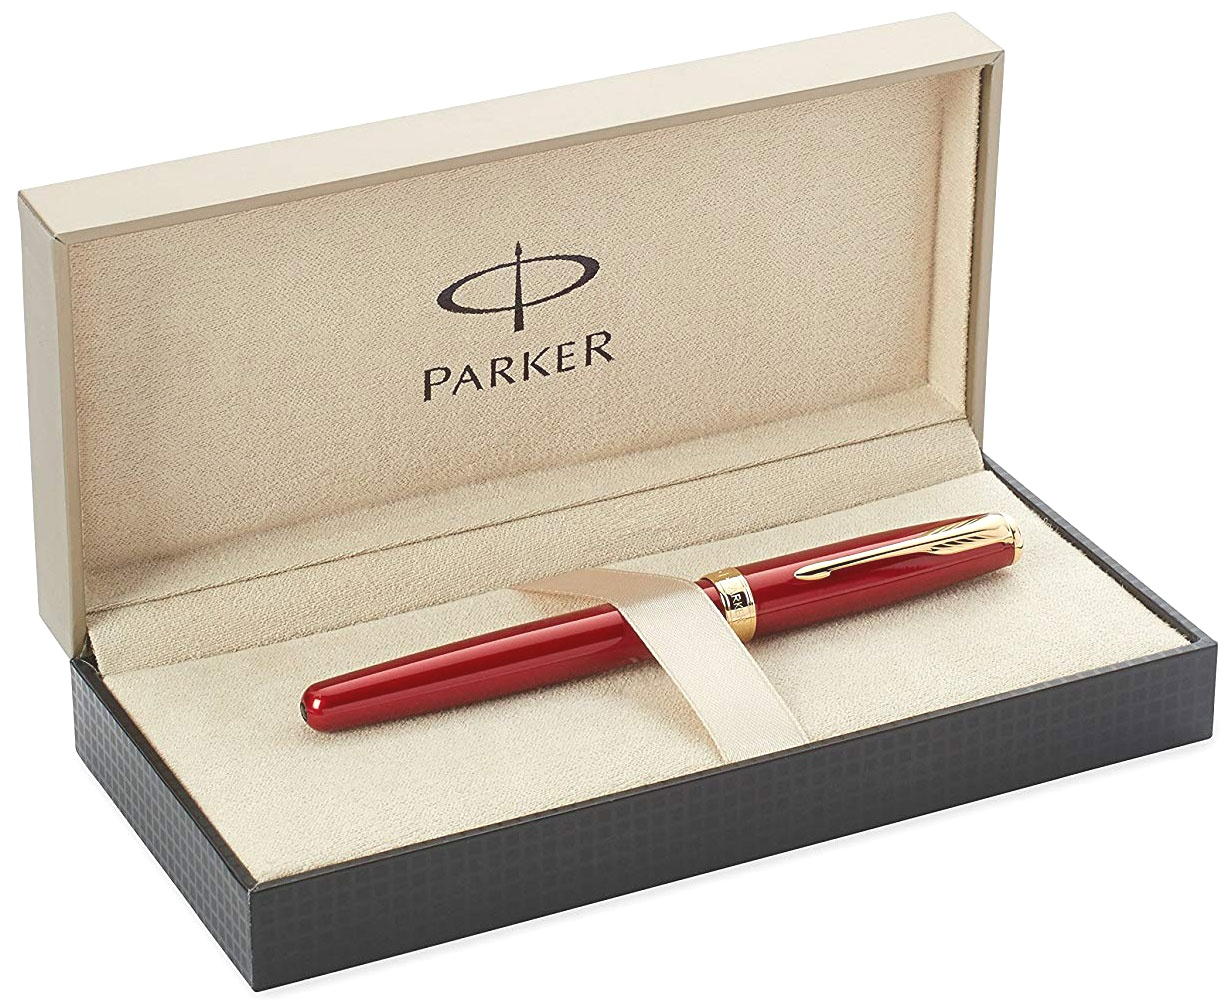 Ручка-роллер Parker Sonnet `13 T539, Lacquer Red GT, фото 4